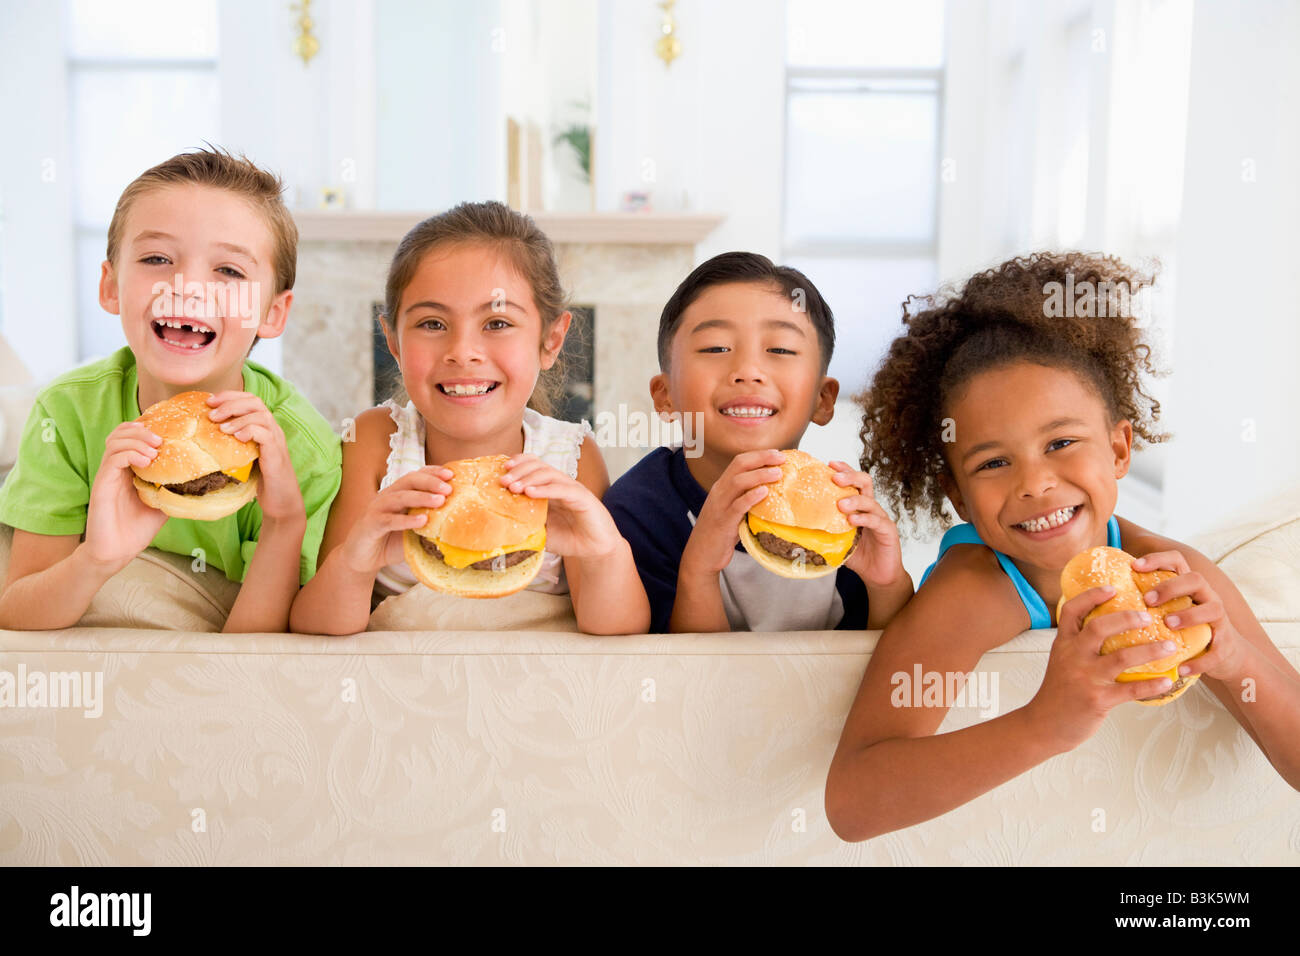 Four young children eating cheeseburgers in living room smiling - Stock Image